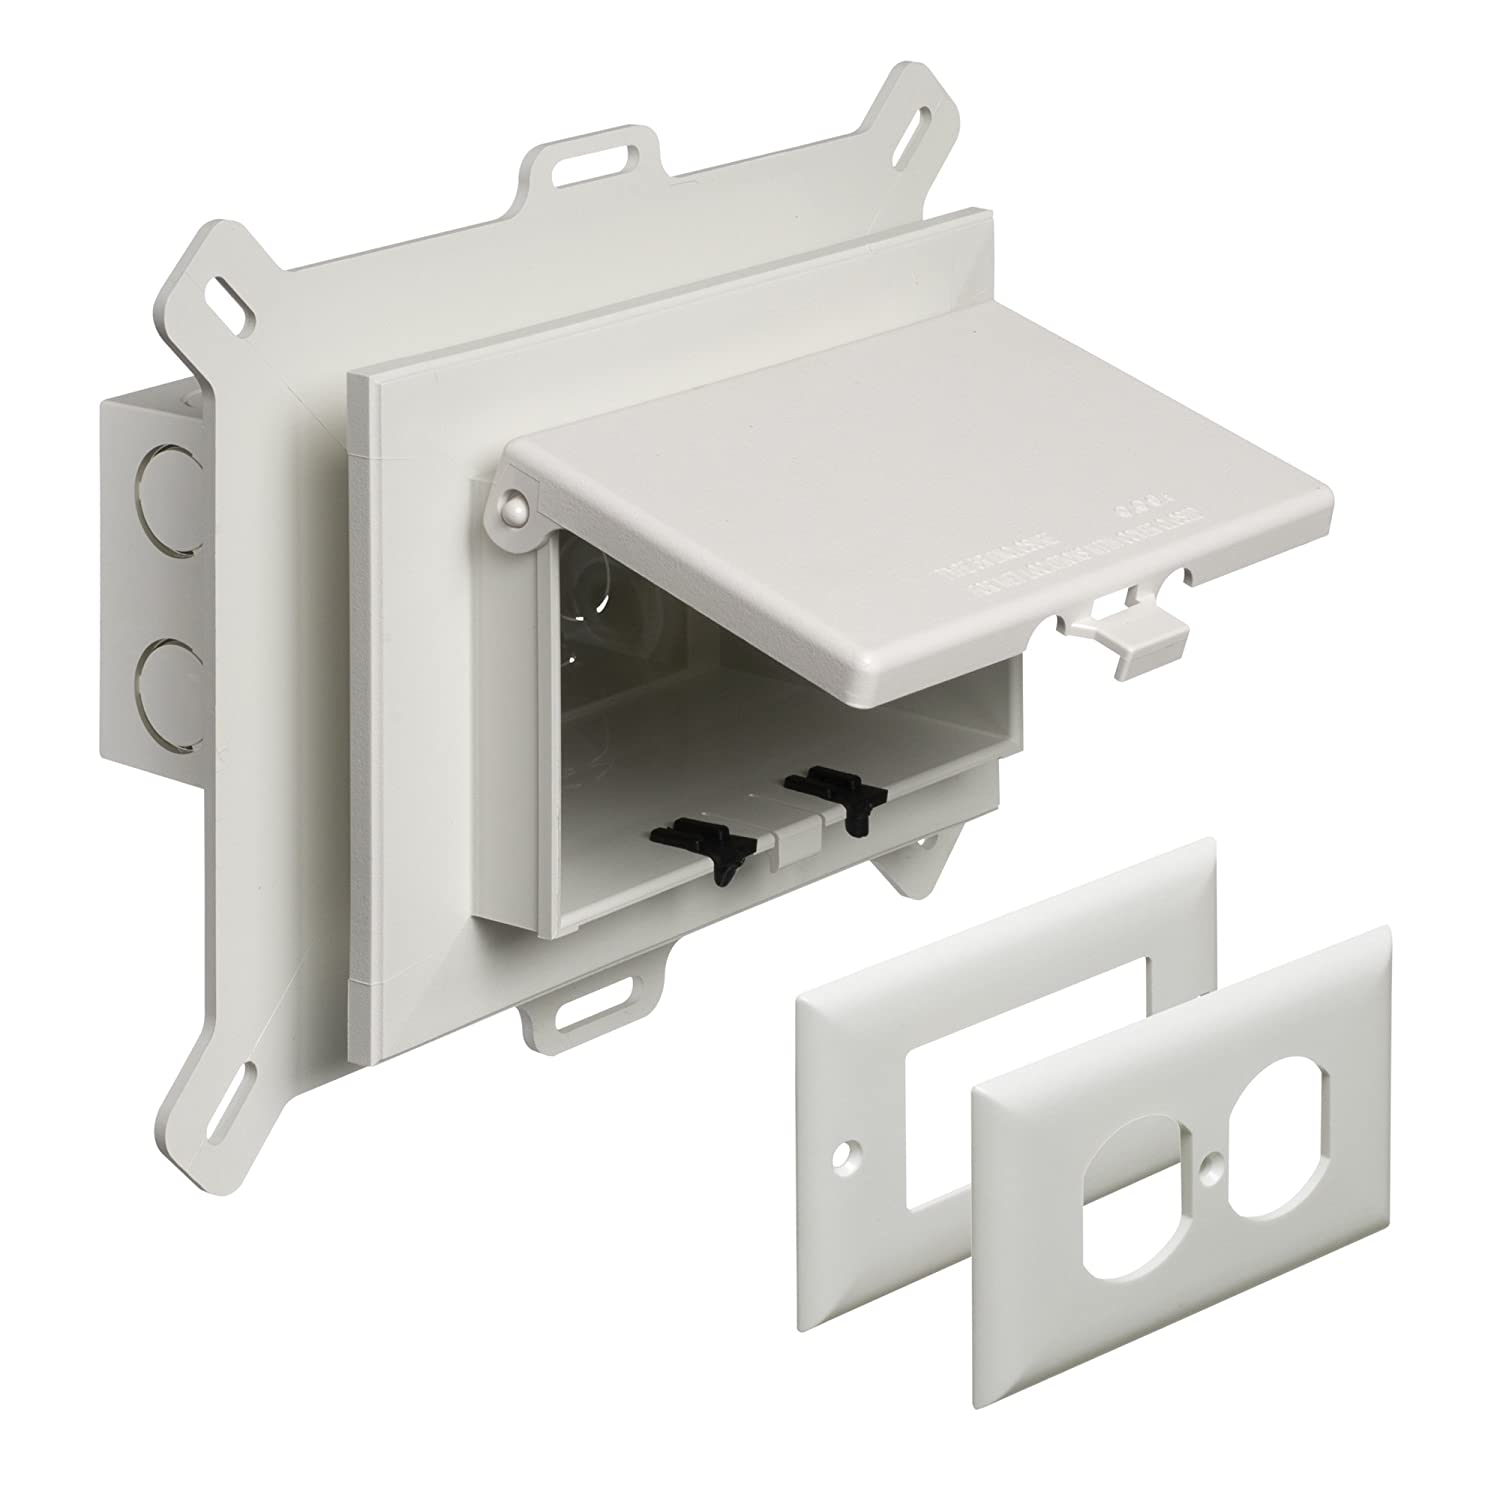 Arlington DBVS1W-1 Low Profile IN BOX Recessed Outlet Box Wall Plate ...